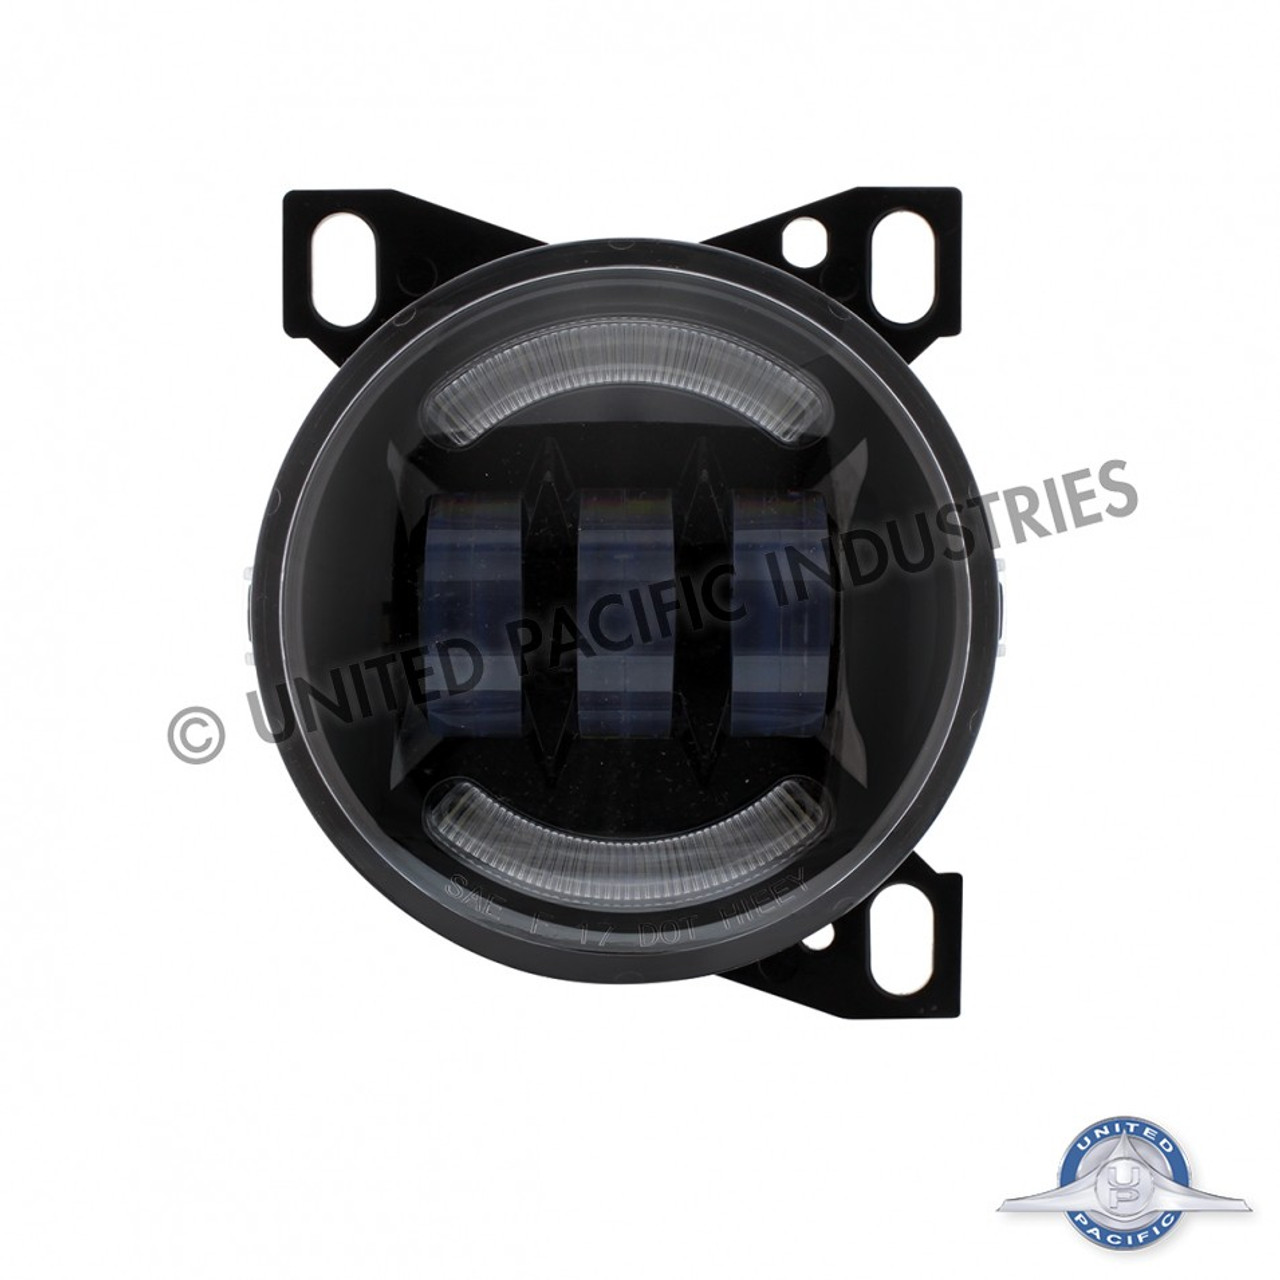 united pacific 4 1 4 black round led fog light with led position light [ 955 x 955 Pixel ]